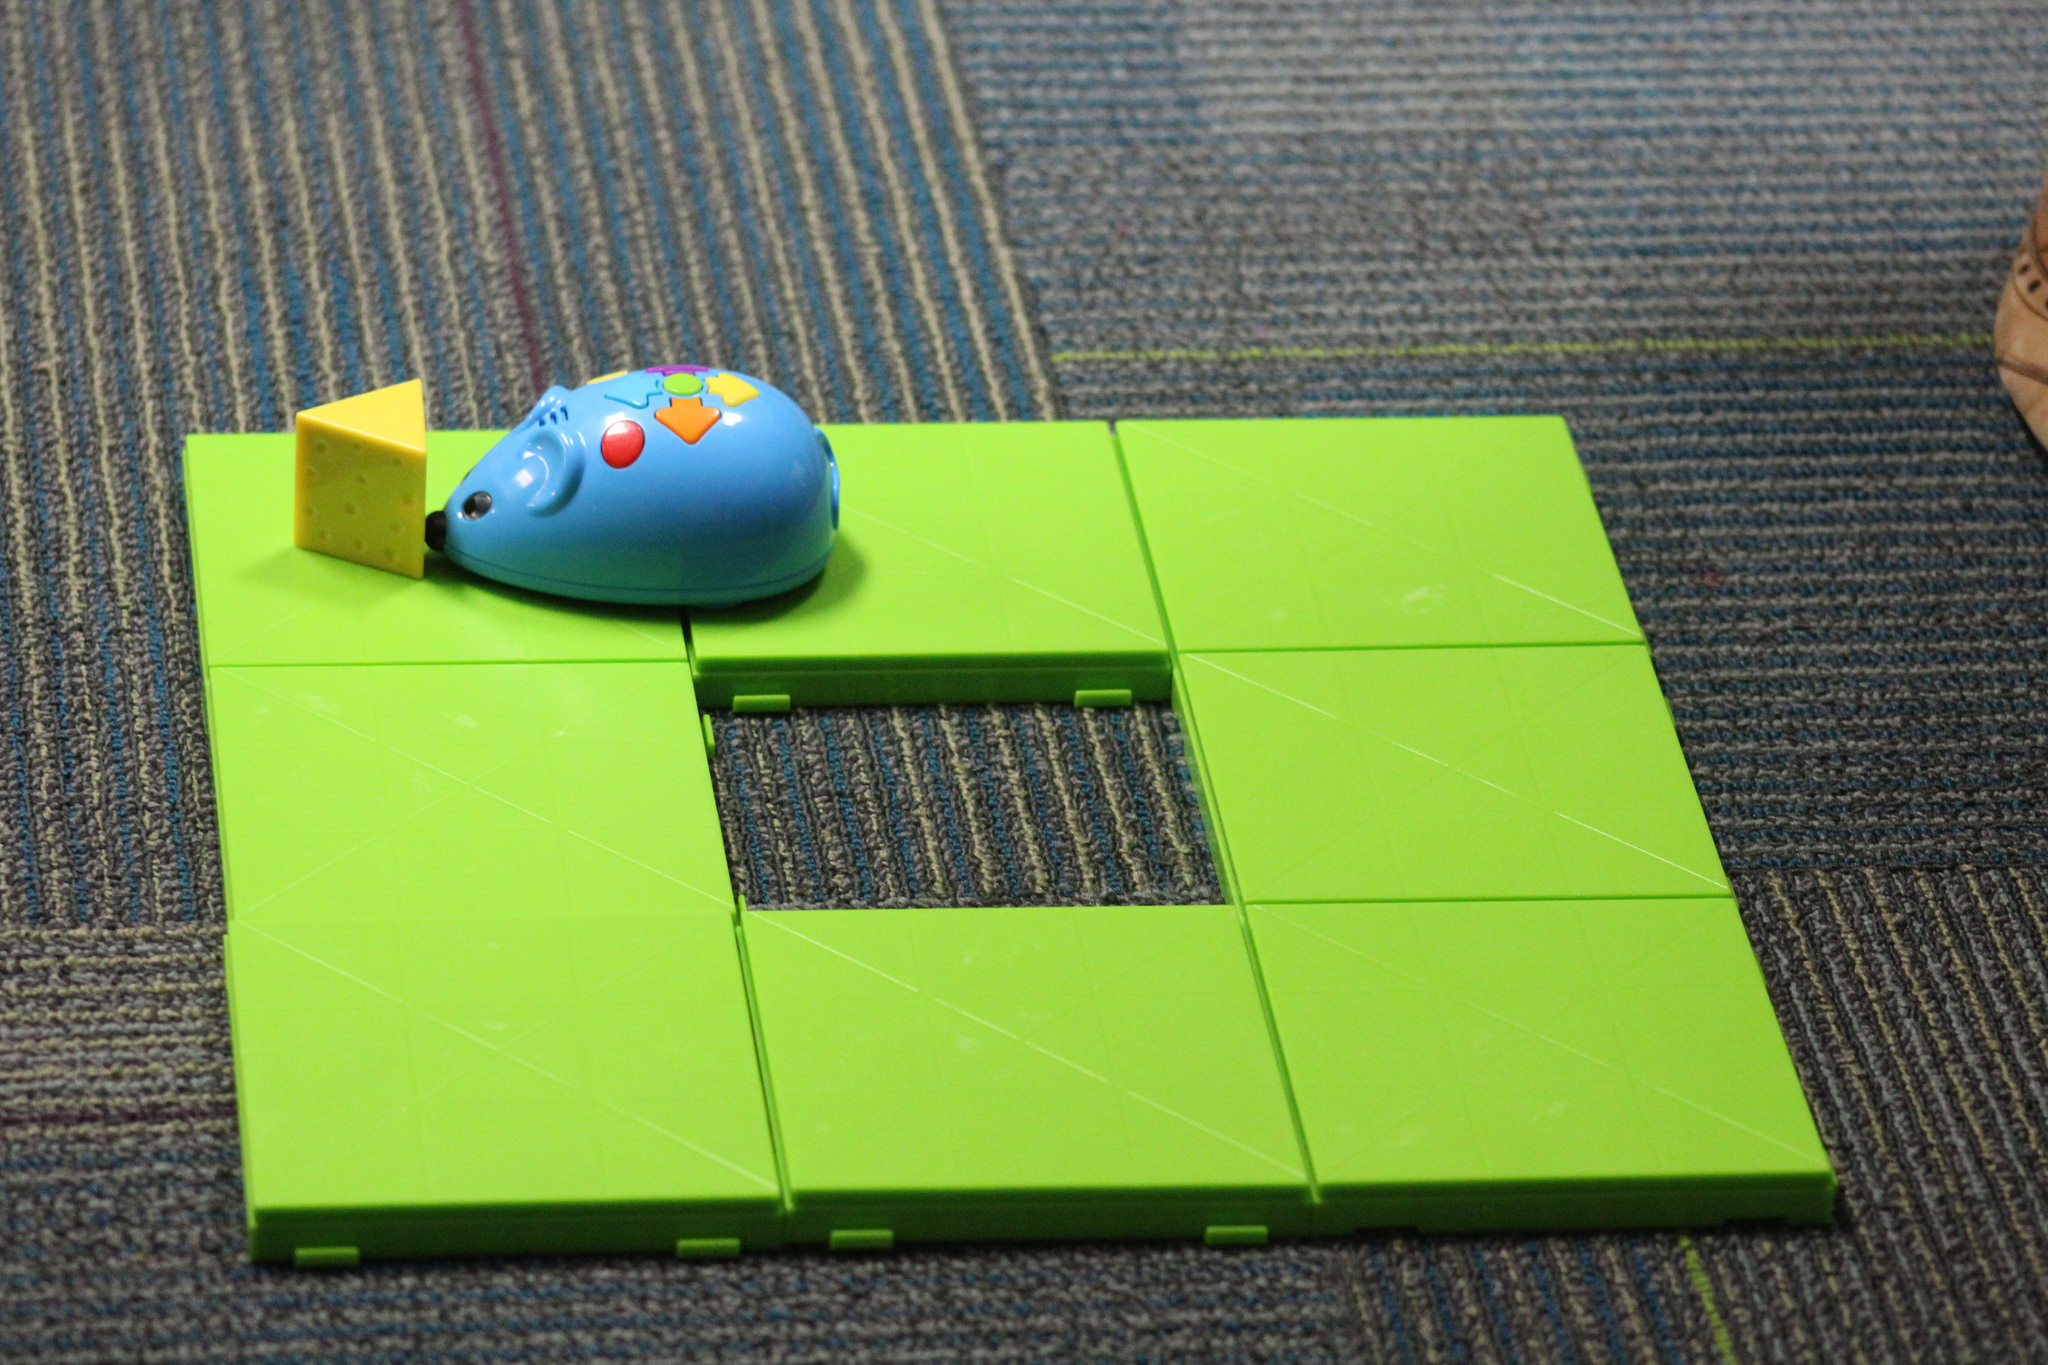 Playing with the Robot Mouse kit by The Learning Company